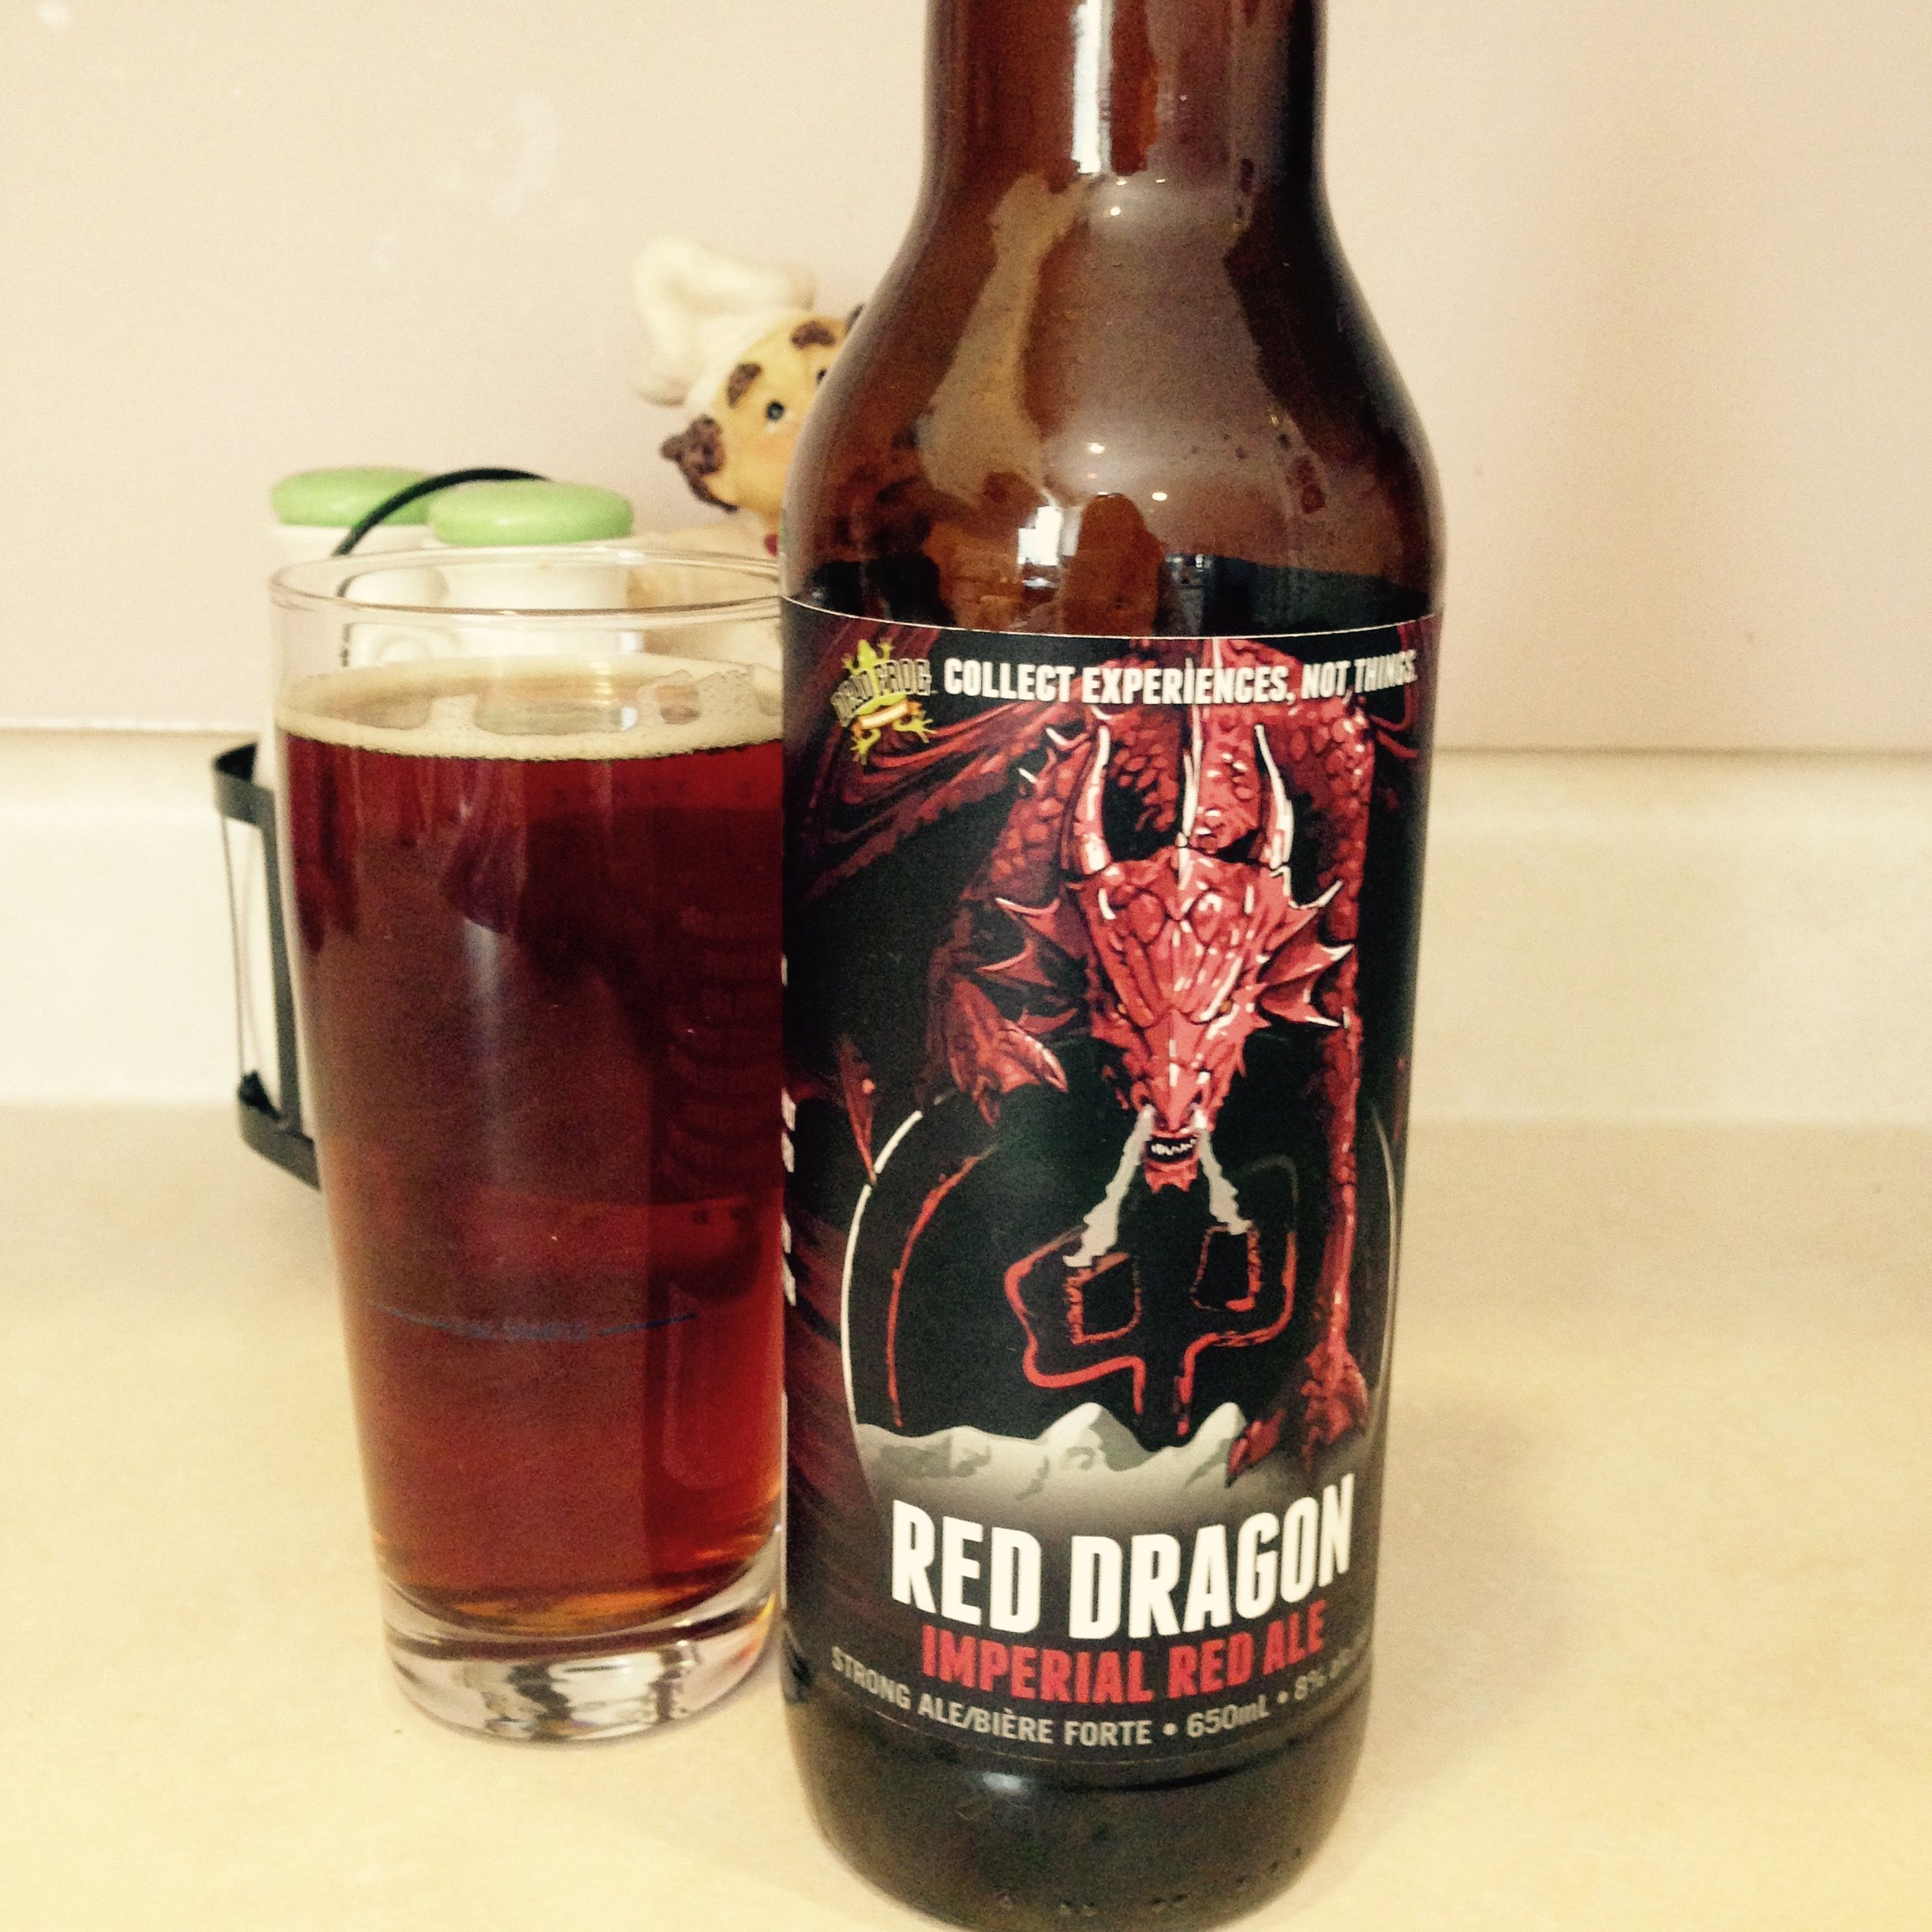 Red Dragon Red Imperial Ale By Dead Frog Has Strong Caramel Finish At 8 0 And 50 Ibu S This Packs A Punch And Is My Favourite Craft Beer Beer Design Malt Beer